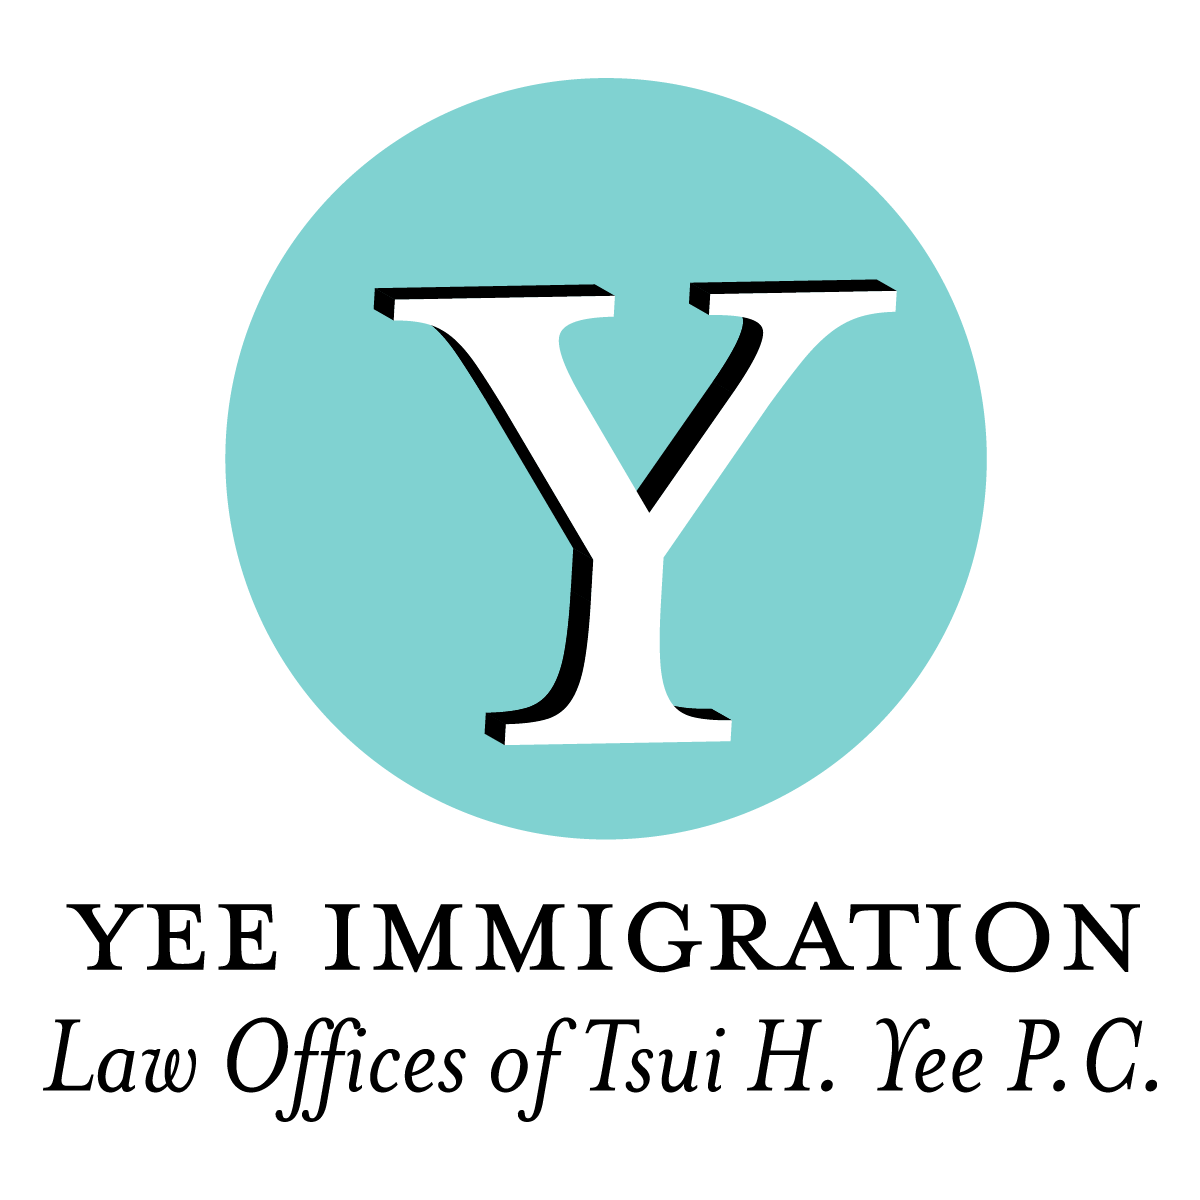 Yee Immigration